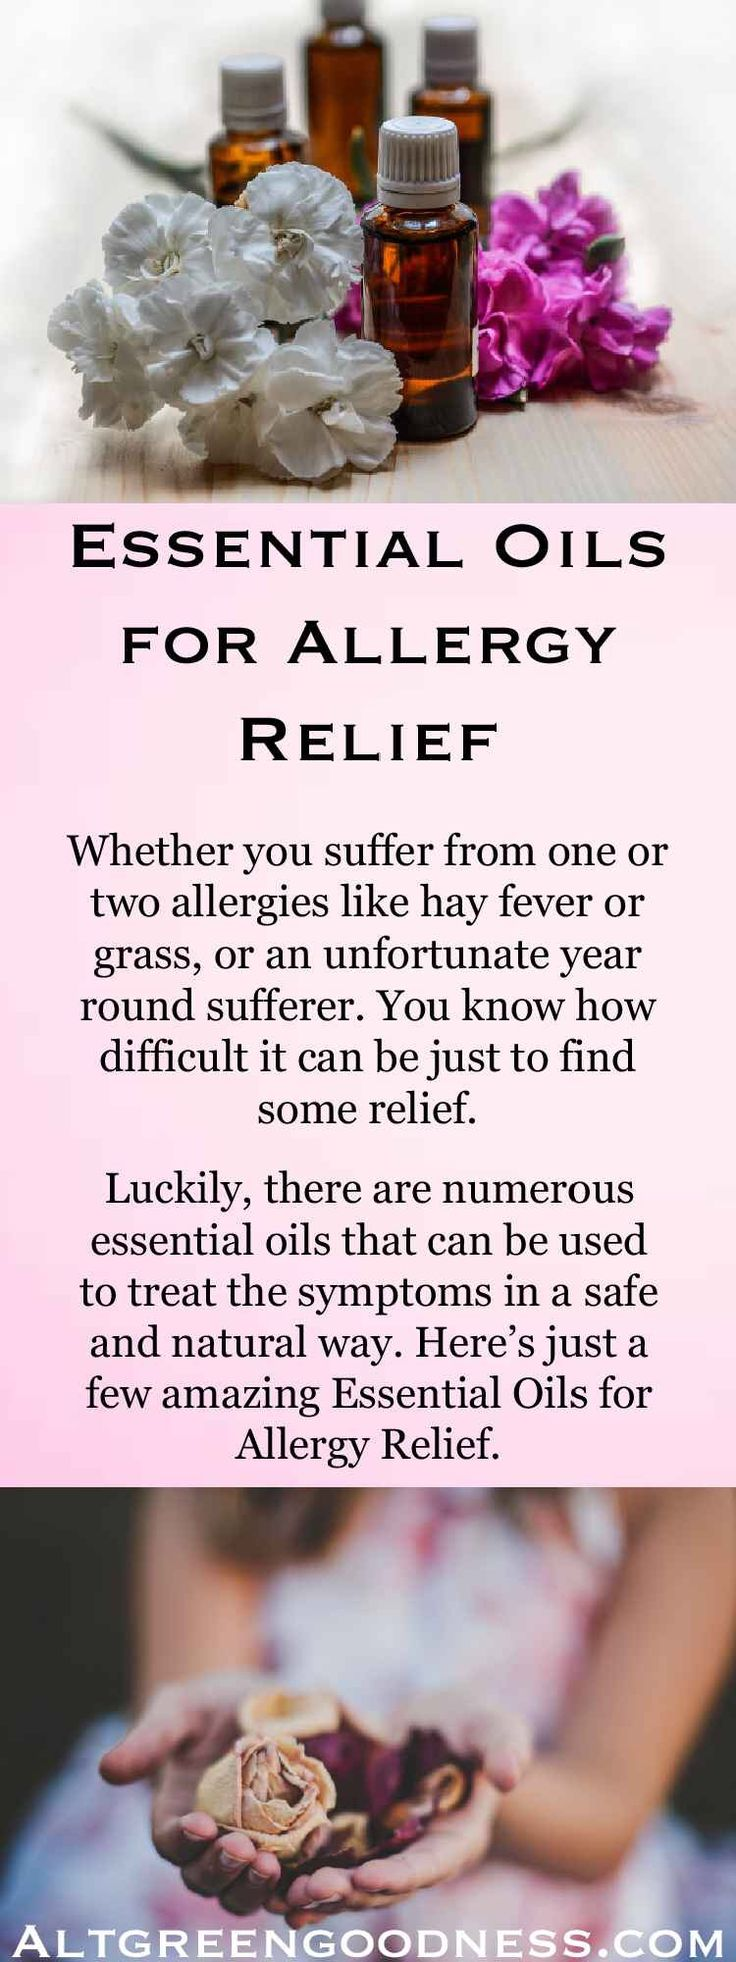 Allergy Relief with Essential Oils. From itchy eyes, runny nose, to more serious symptoms. Essential oils really can relieve the pain and irritation  from allergies. Lavender, lemon, and Tea Tree essential oils are just some that we look at. Find out more